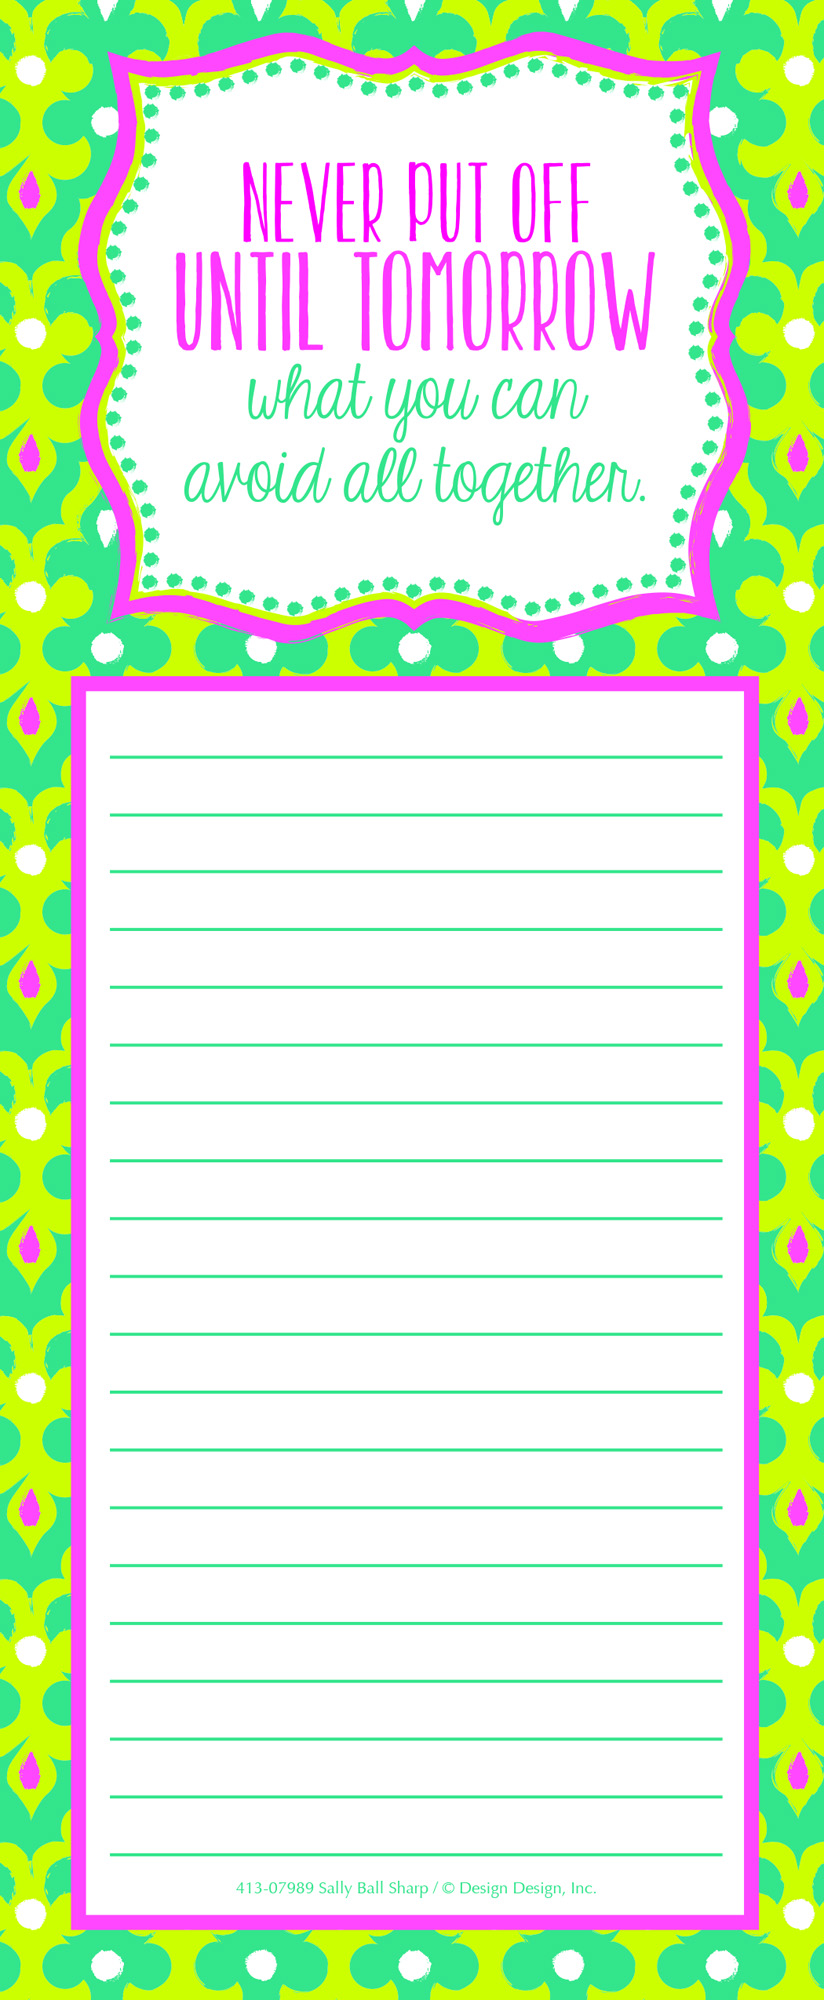 Avoid All Together Shopping List Pad